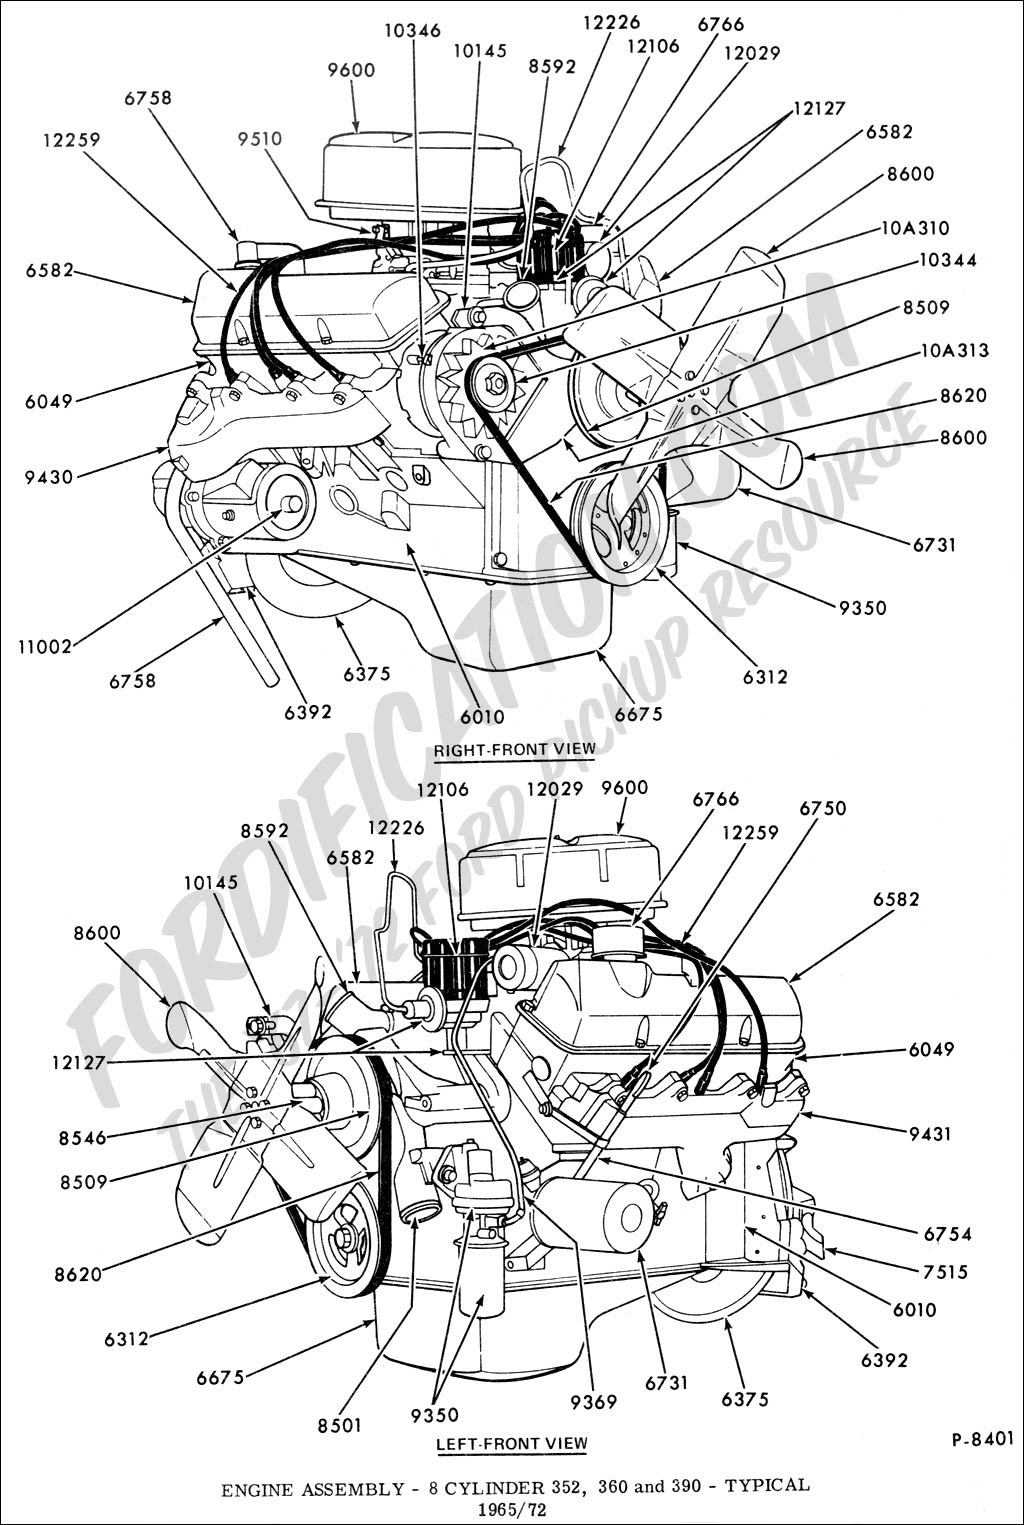 alternator wiring diagram ford 1990 mustang alternator discover 1966 bronco wiring schematic